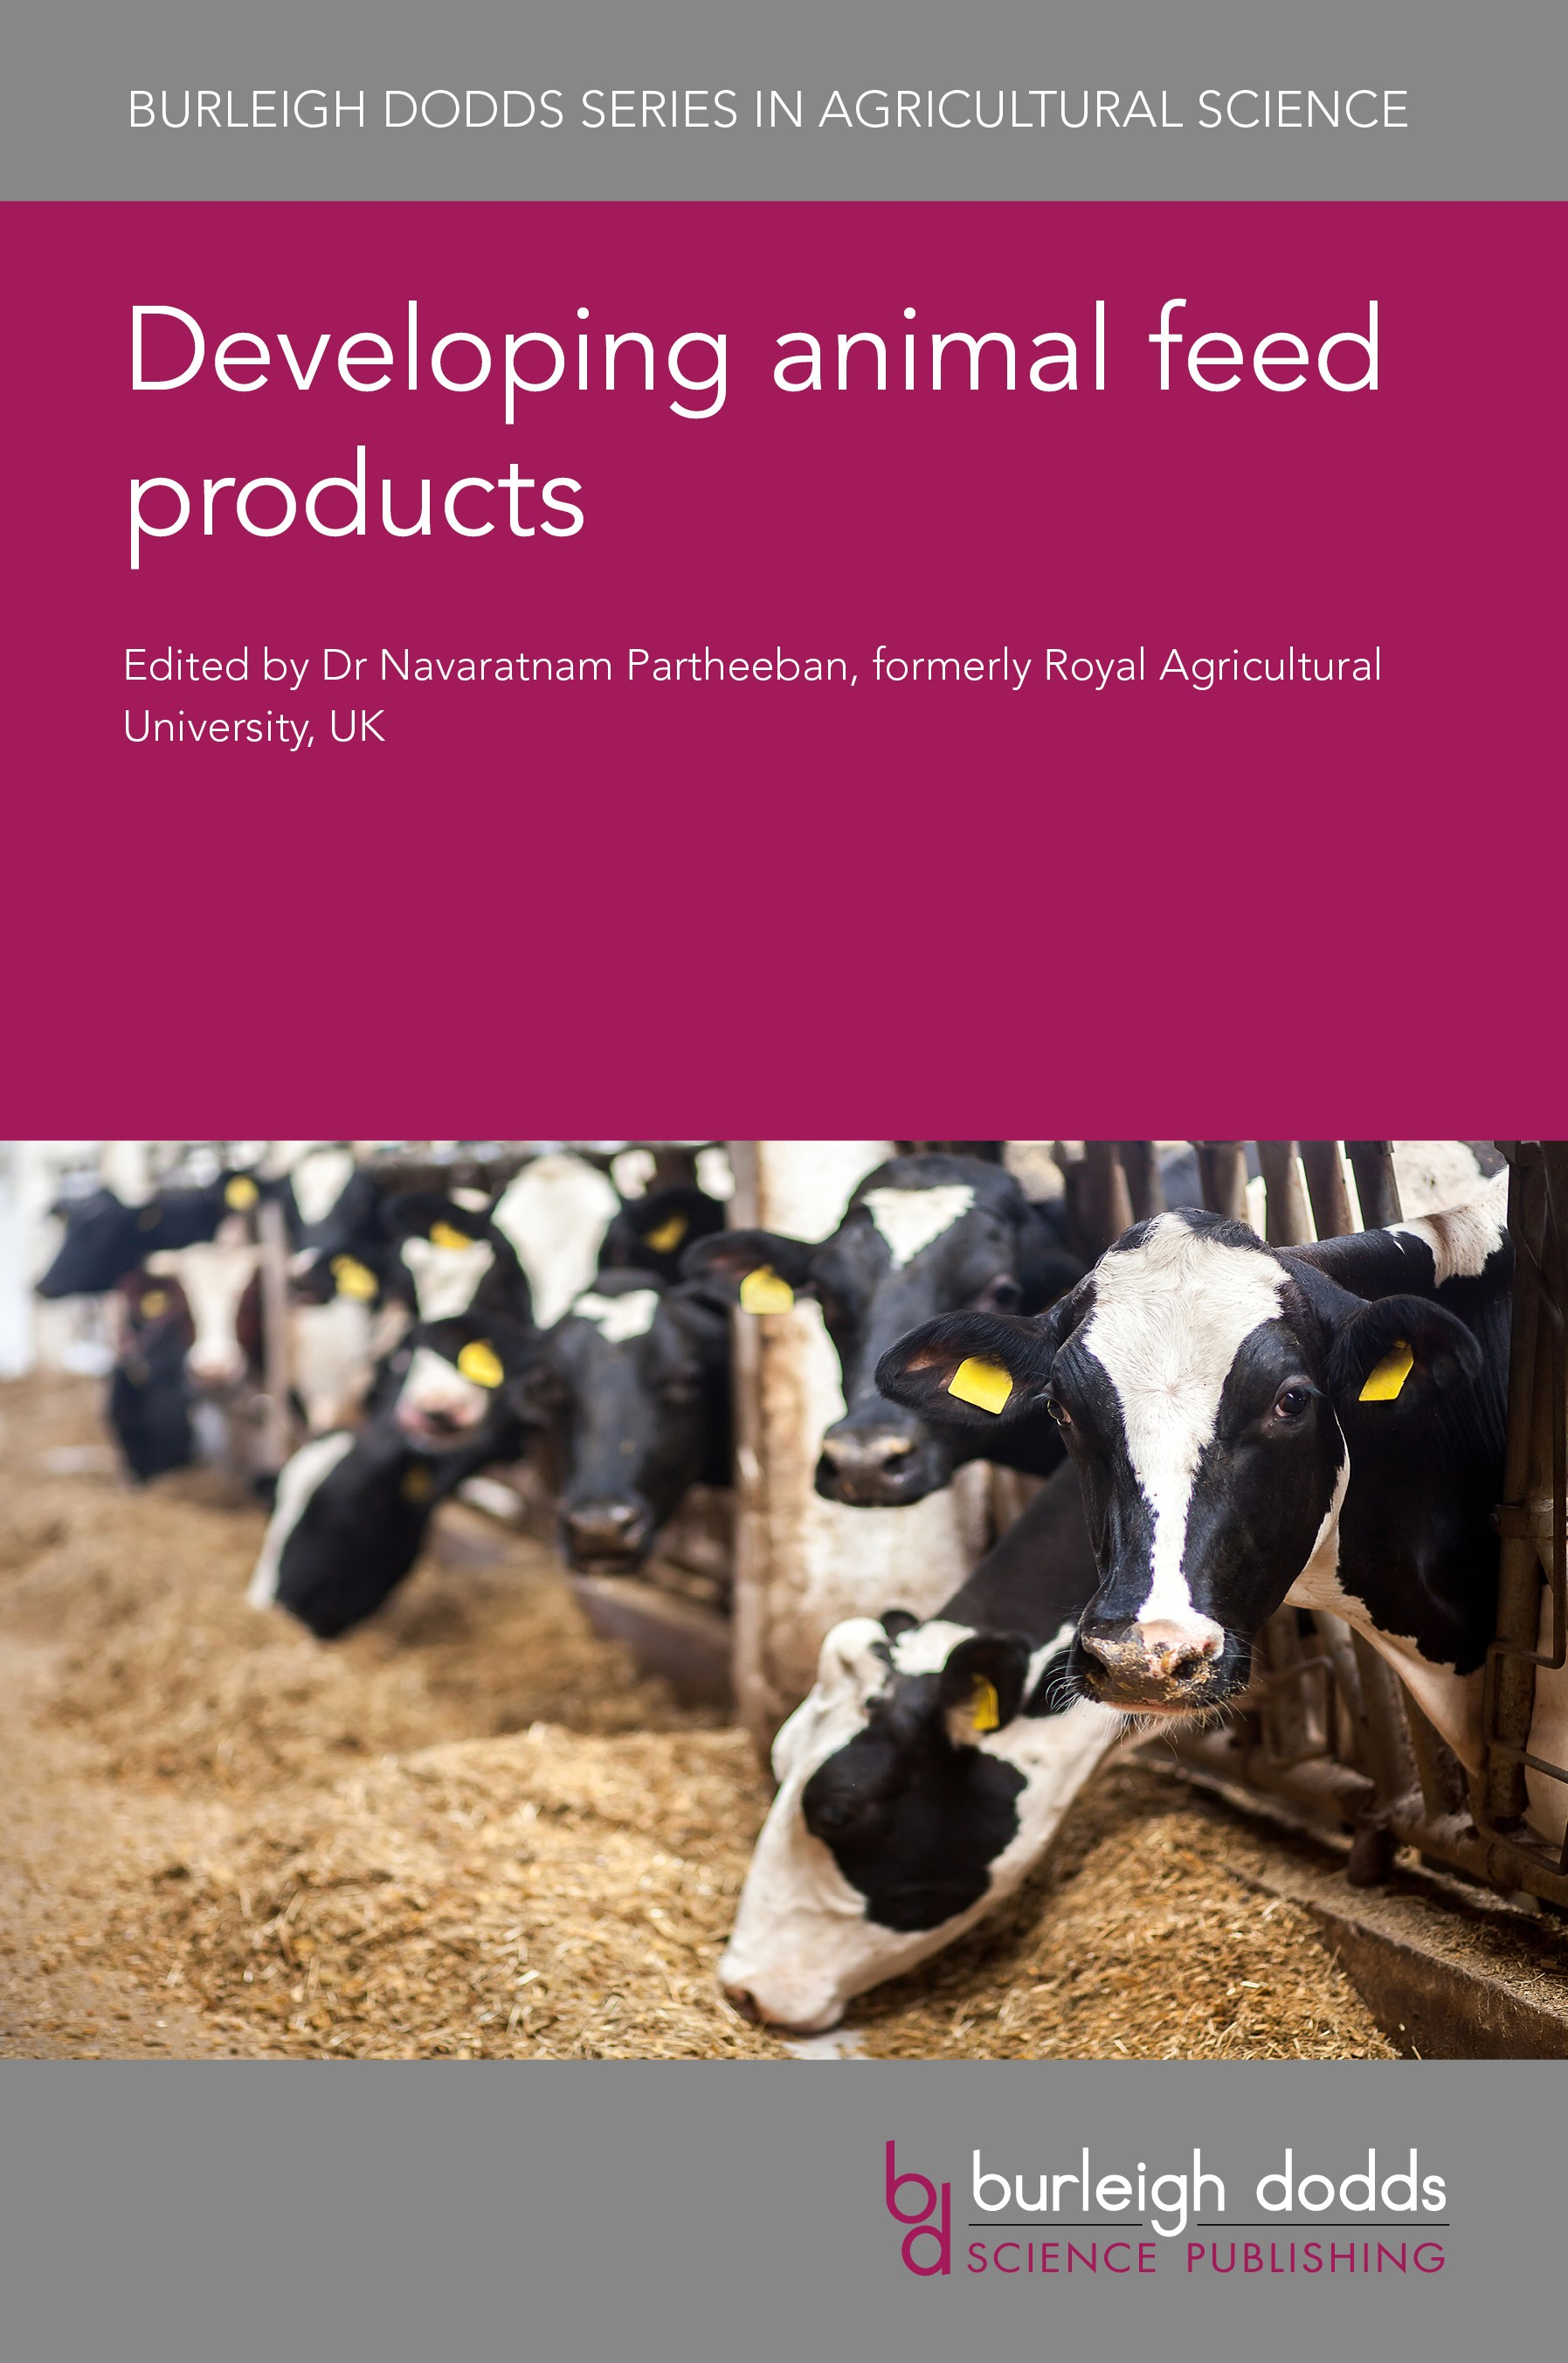 Developing animal feed products